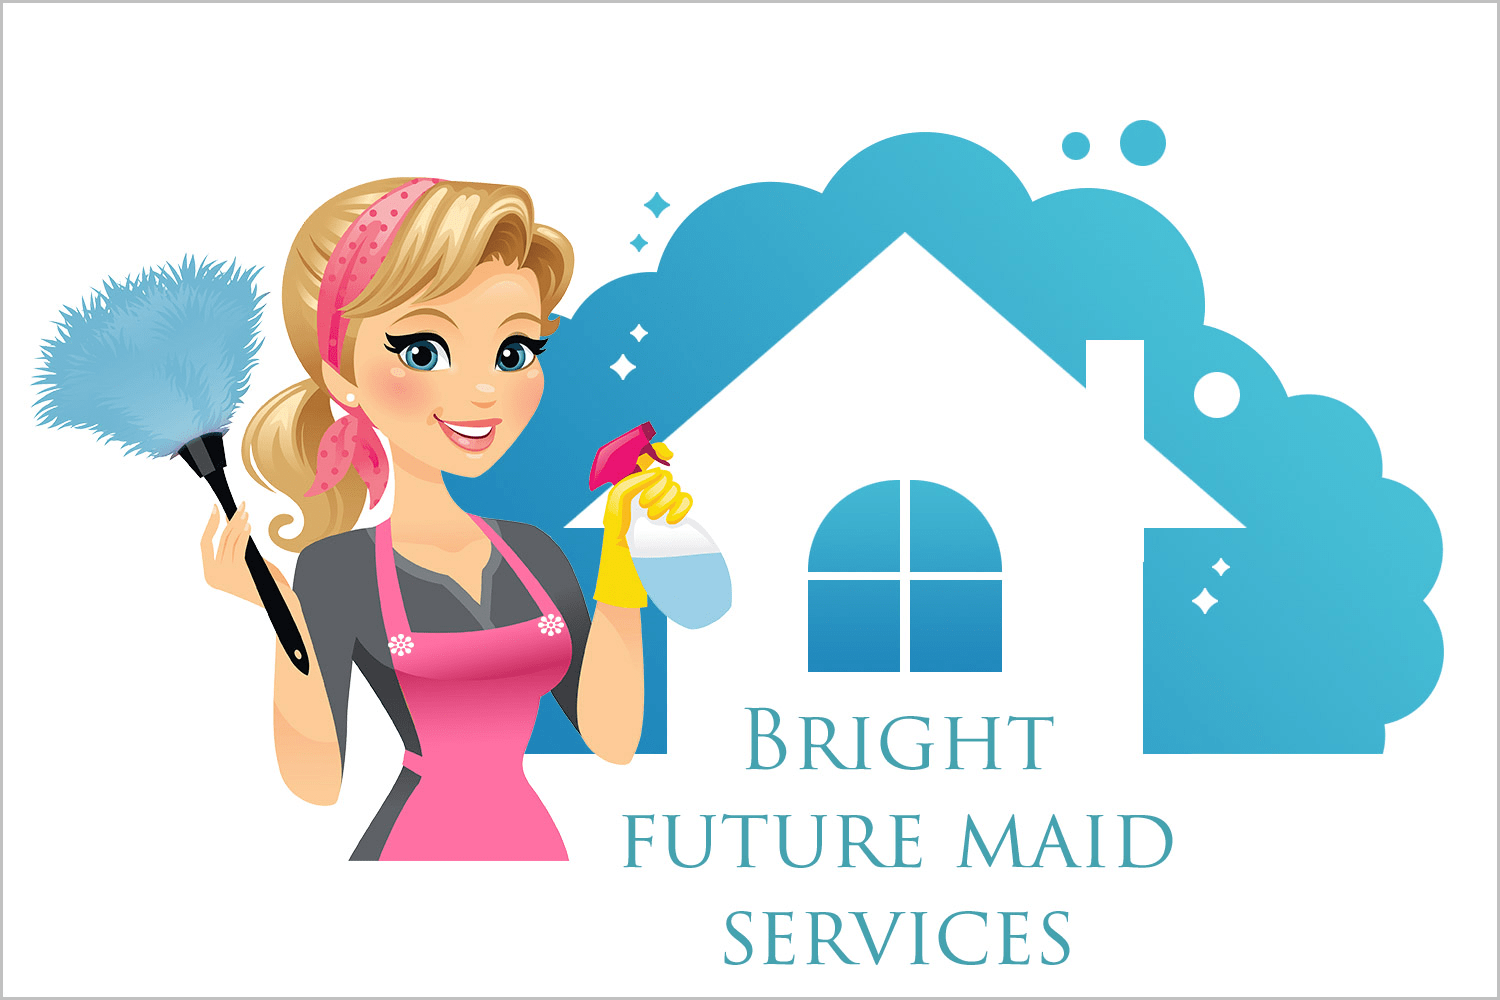 Bright future maid services